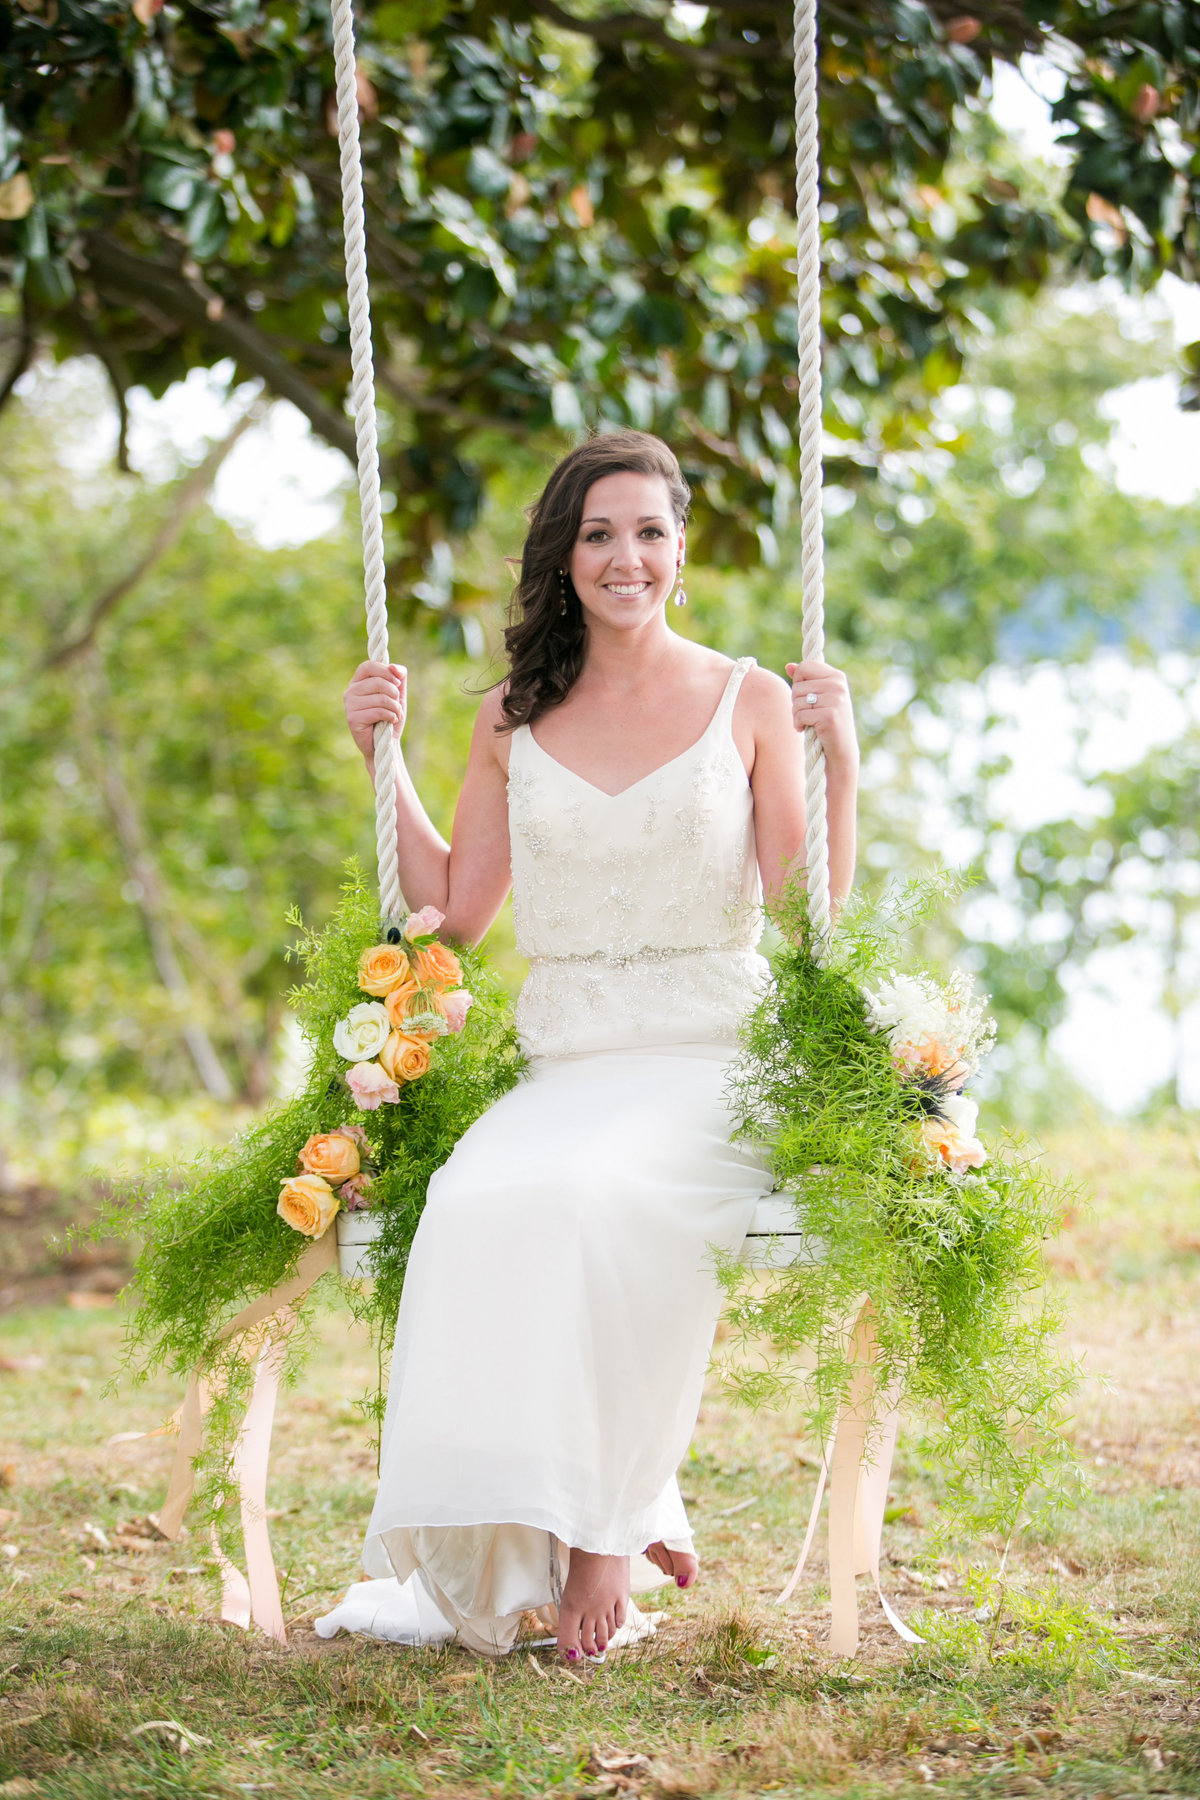 Bohemia Overlook wedding bride on a swing